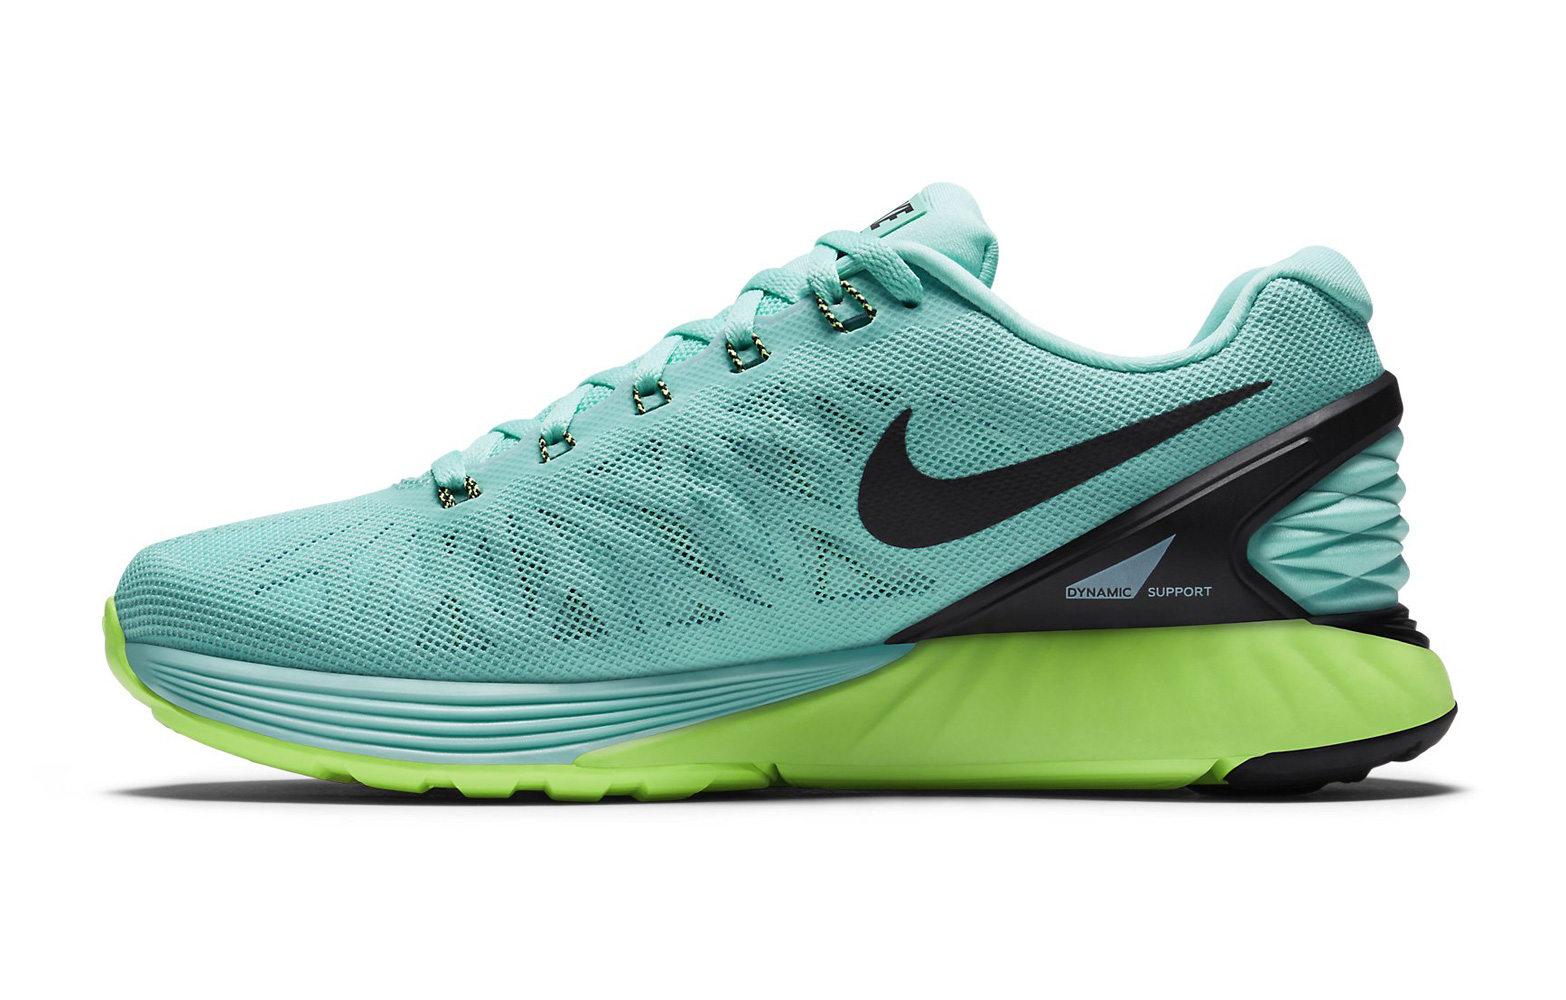 reputable site c4d6f 610cd zapatillas nike lunarglide mujer